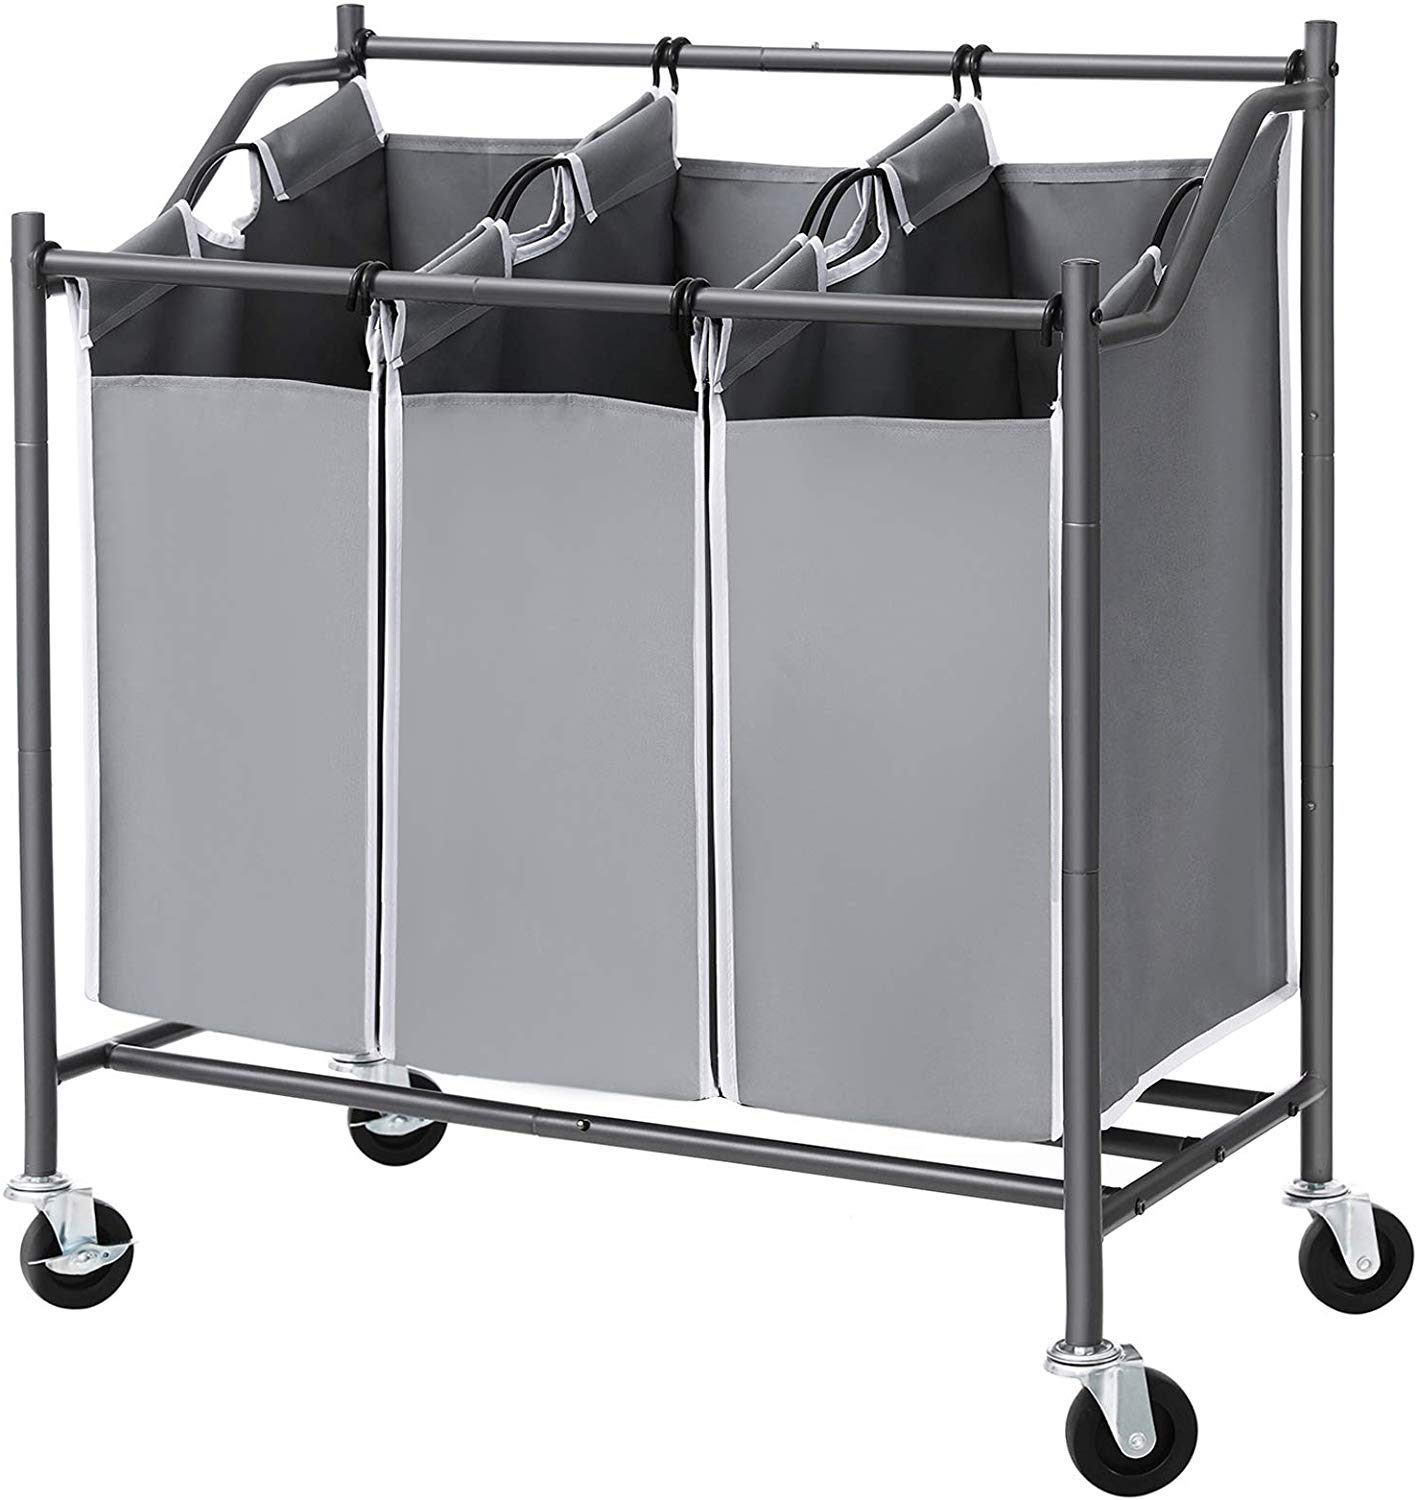 SONGMICS Cart Sorter, Rolling Laundry Basket Hamper, with 3 Removable Bags, Casters and Brakes, Gray URLS70GS by SONGMICS